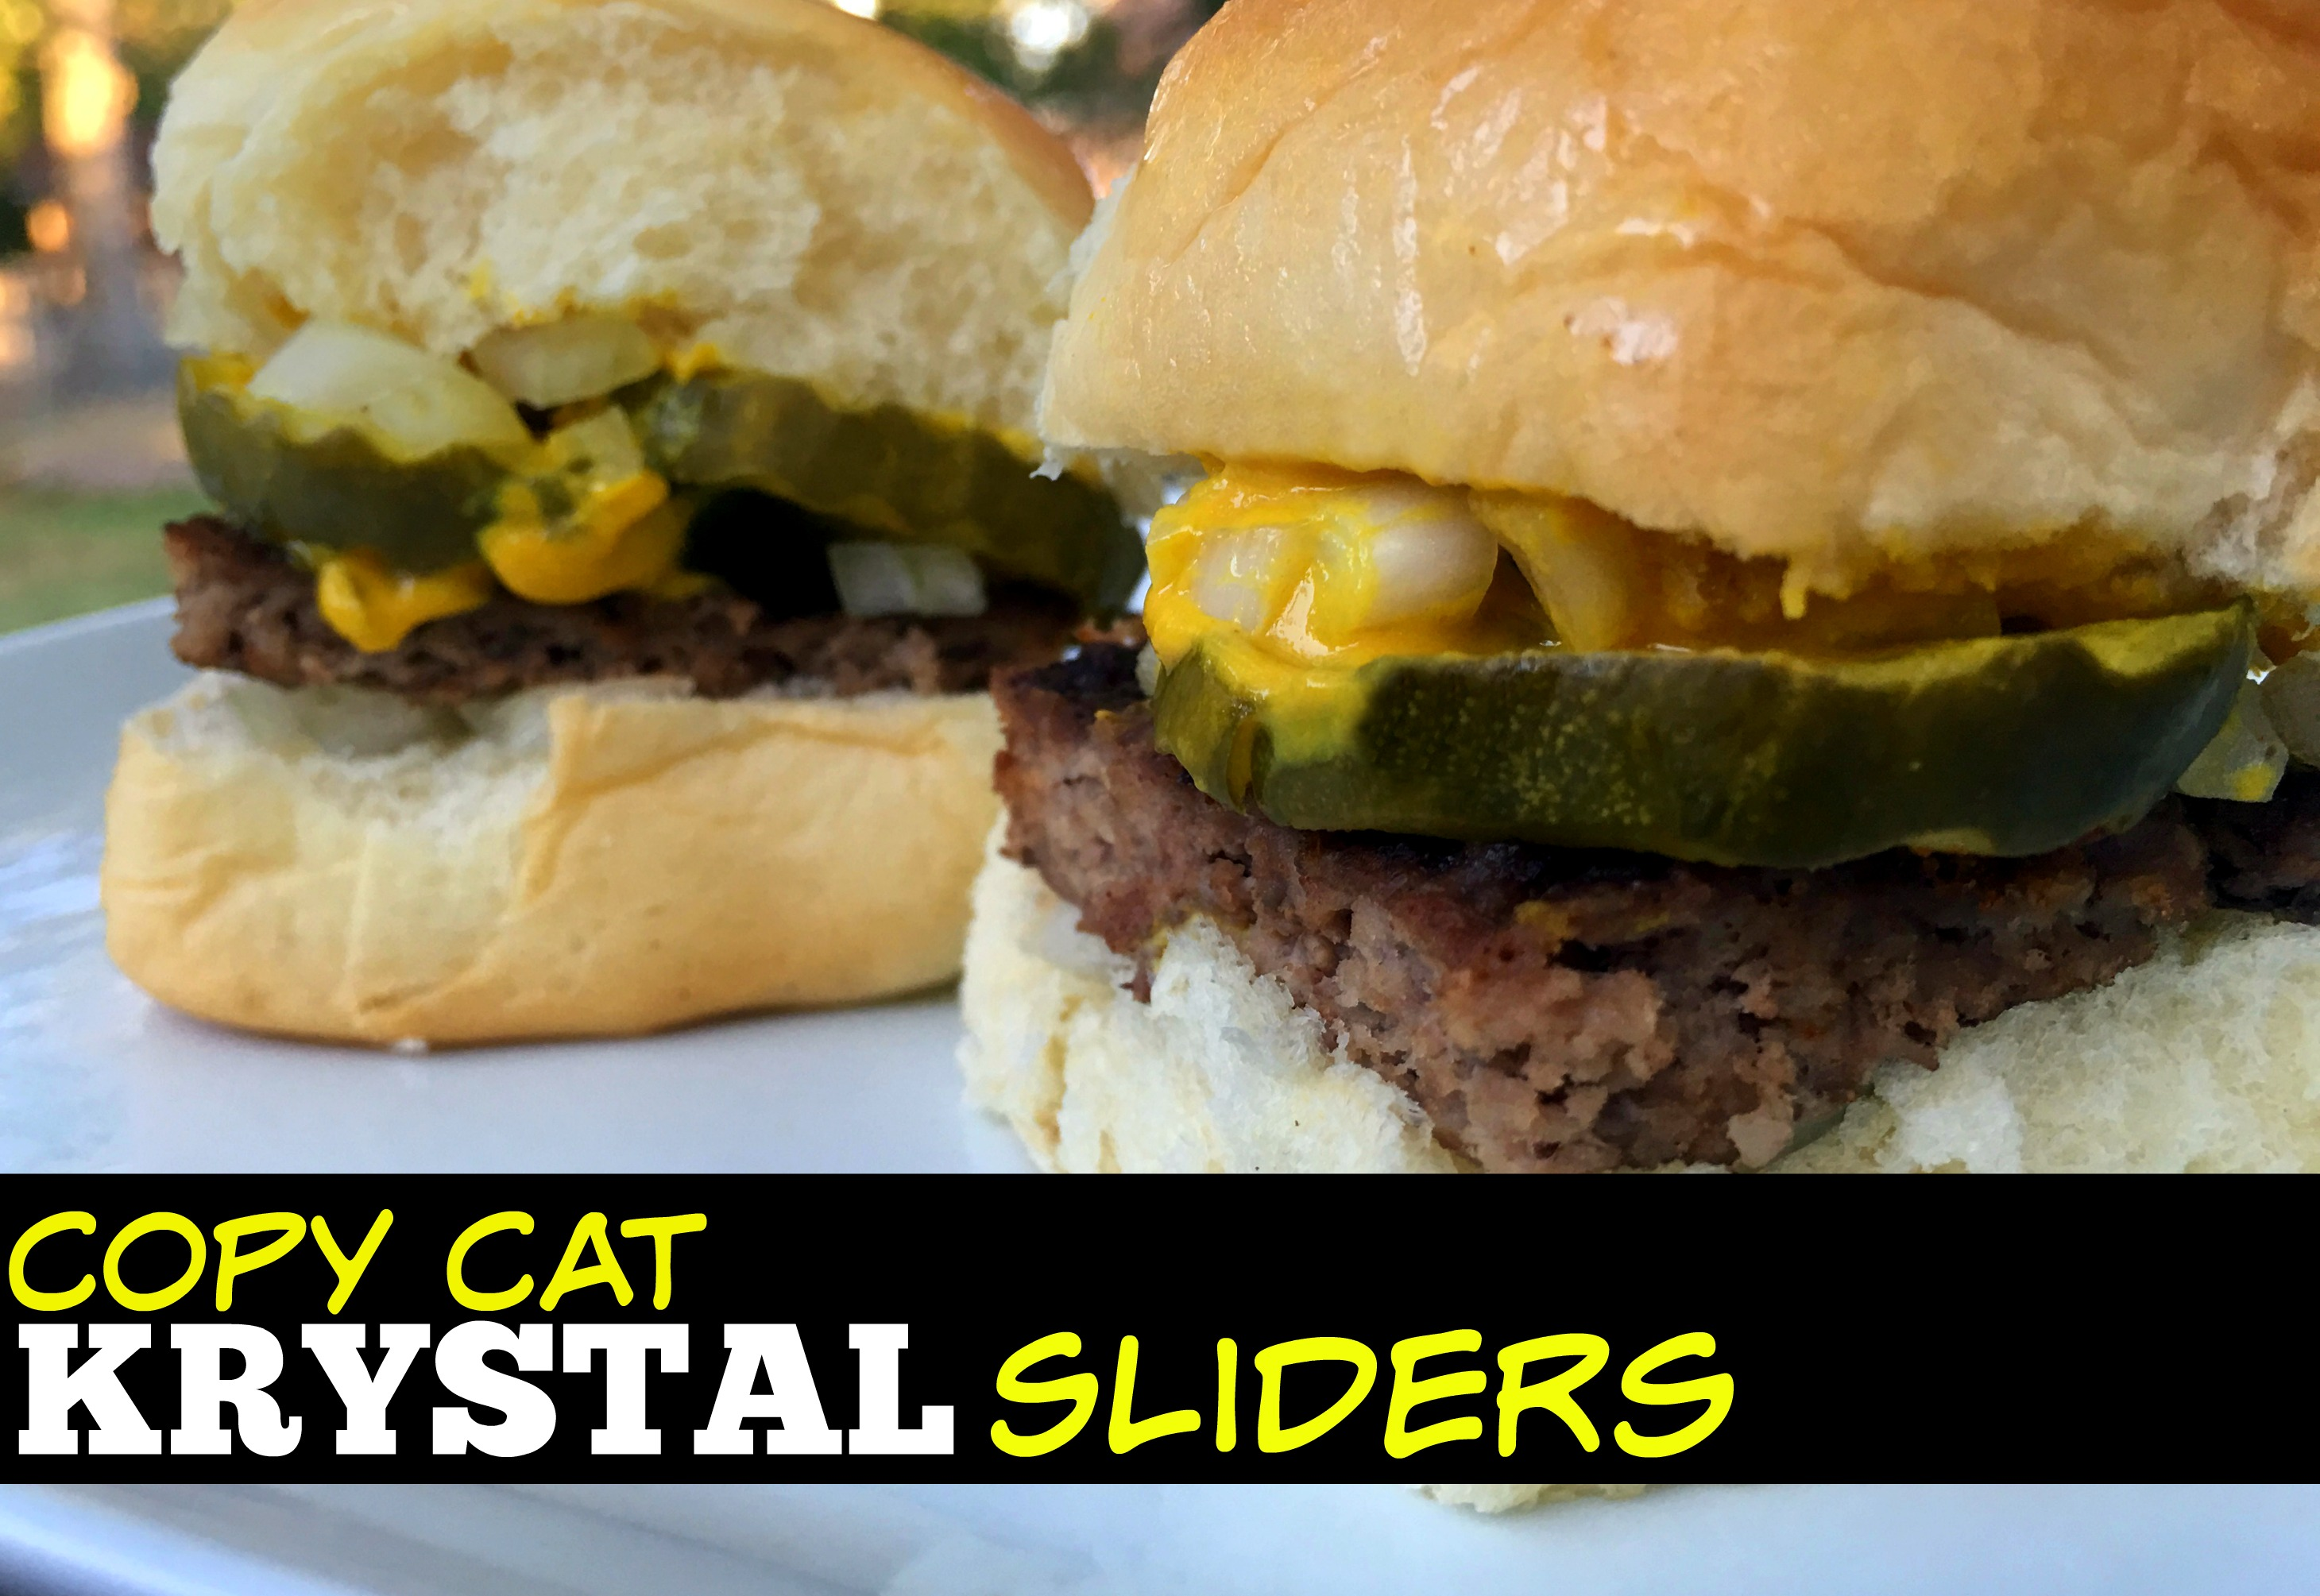 'Better than Krystal's' Sliders